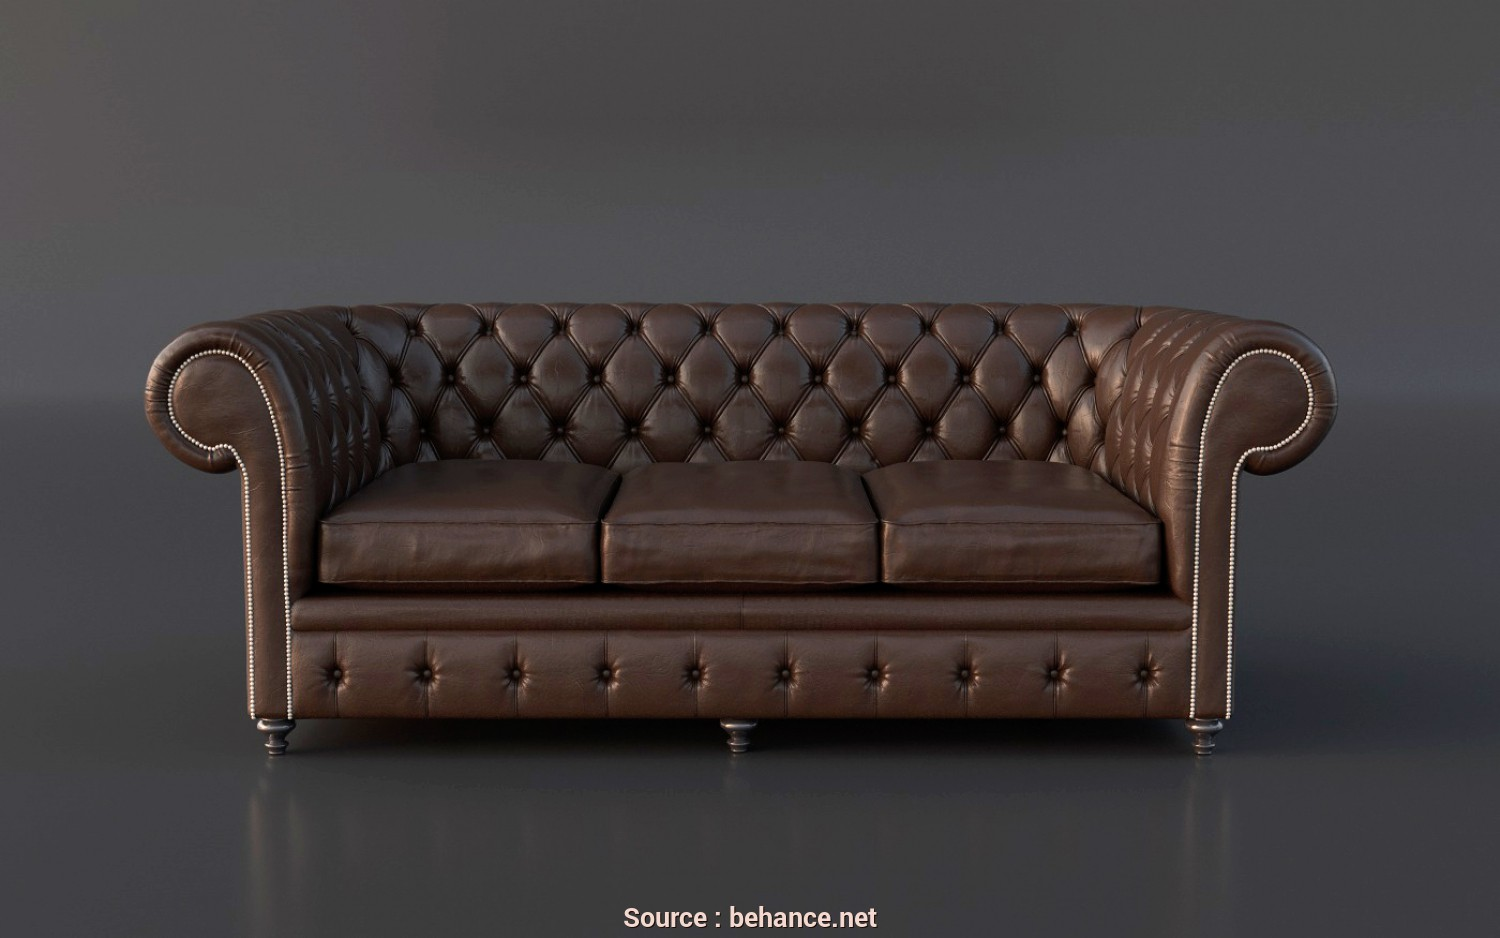 Divano Chester 3D Model, Eccellente FREE Chesterfield Couch 3D Model On Behance